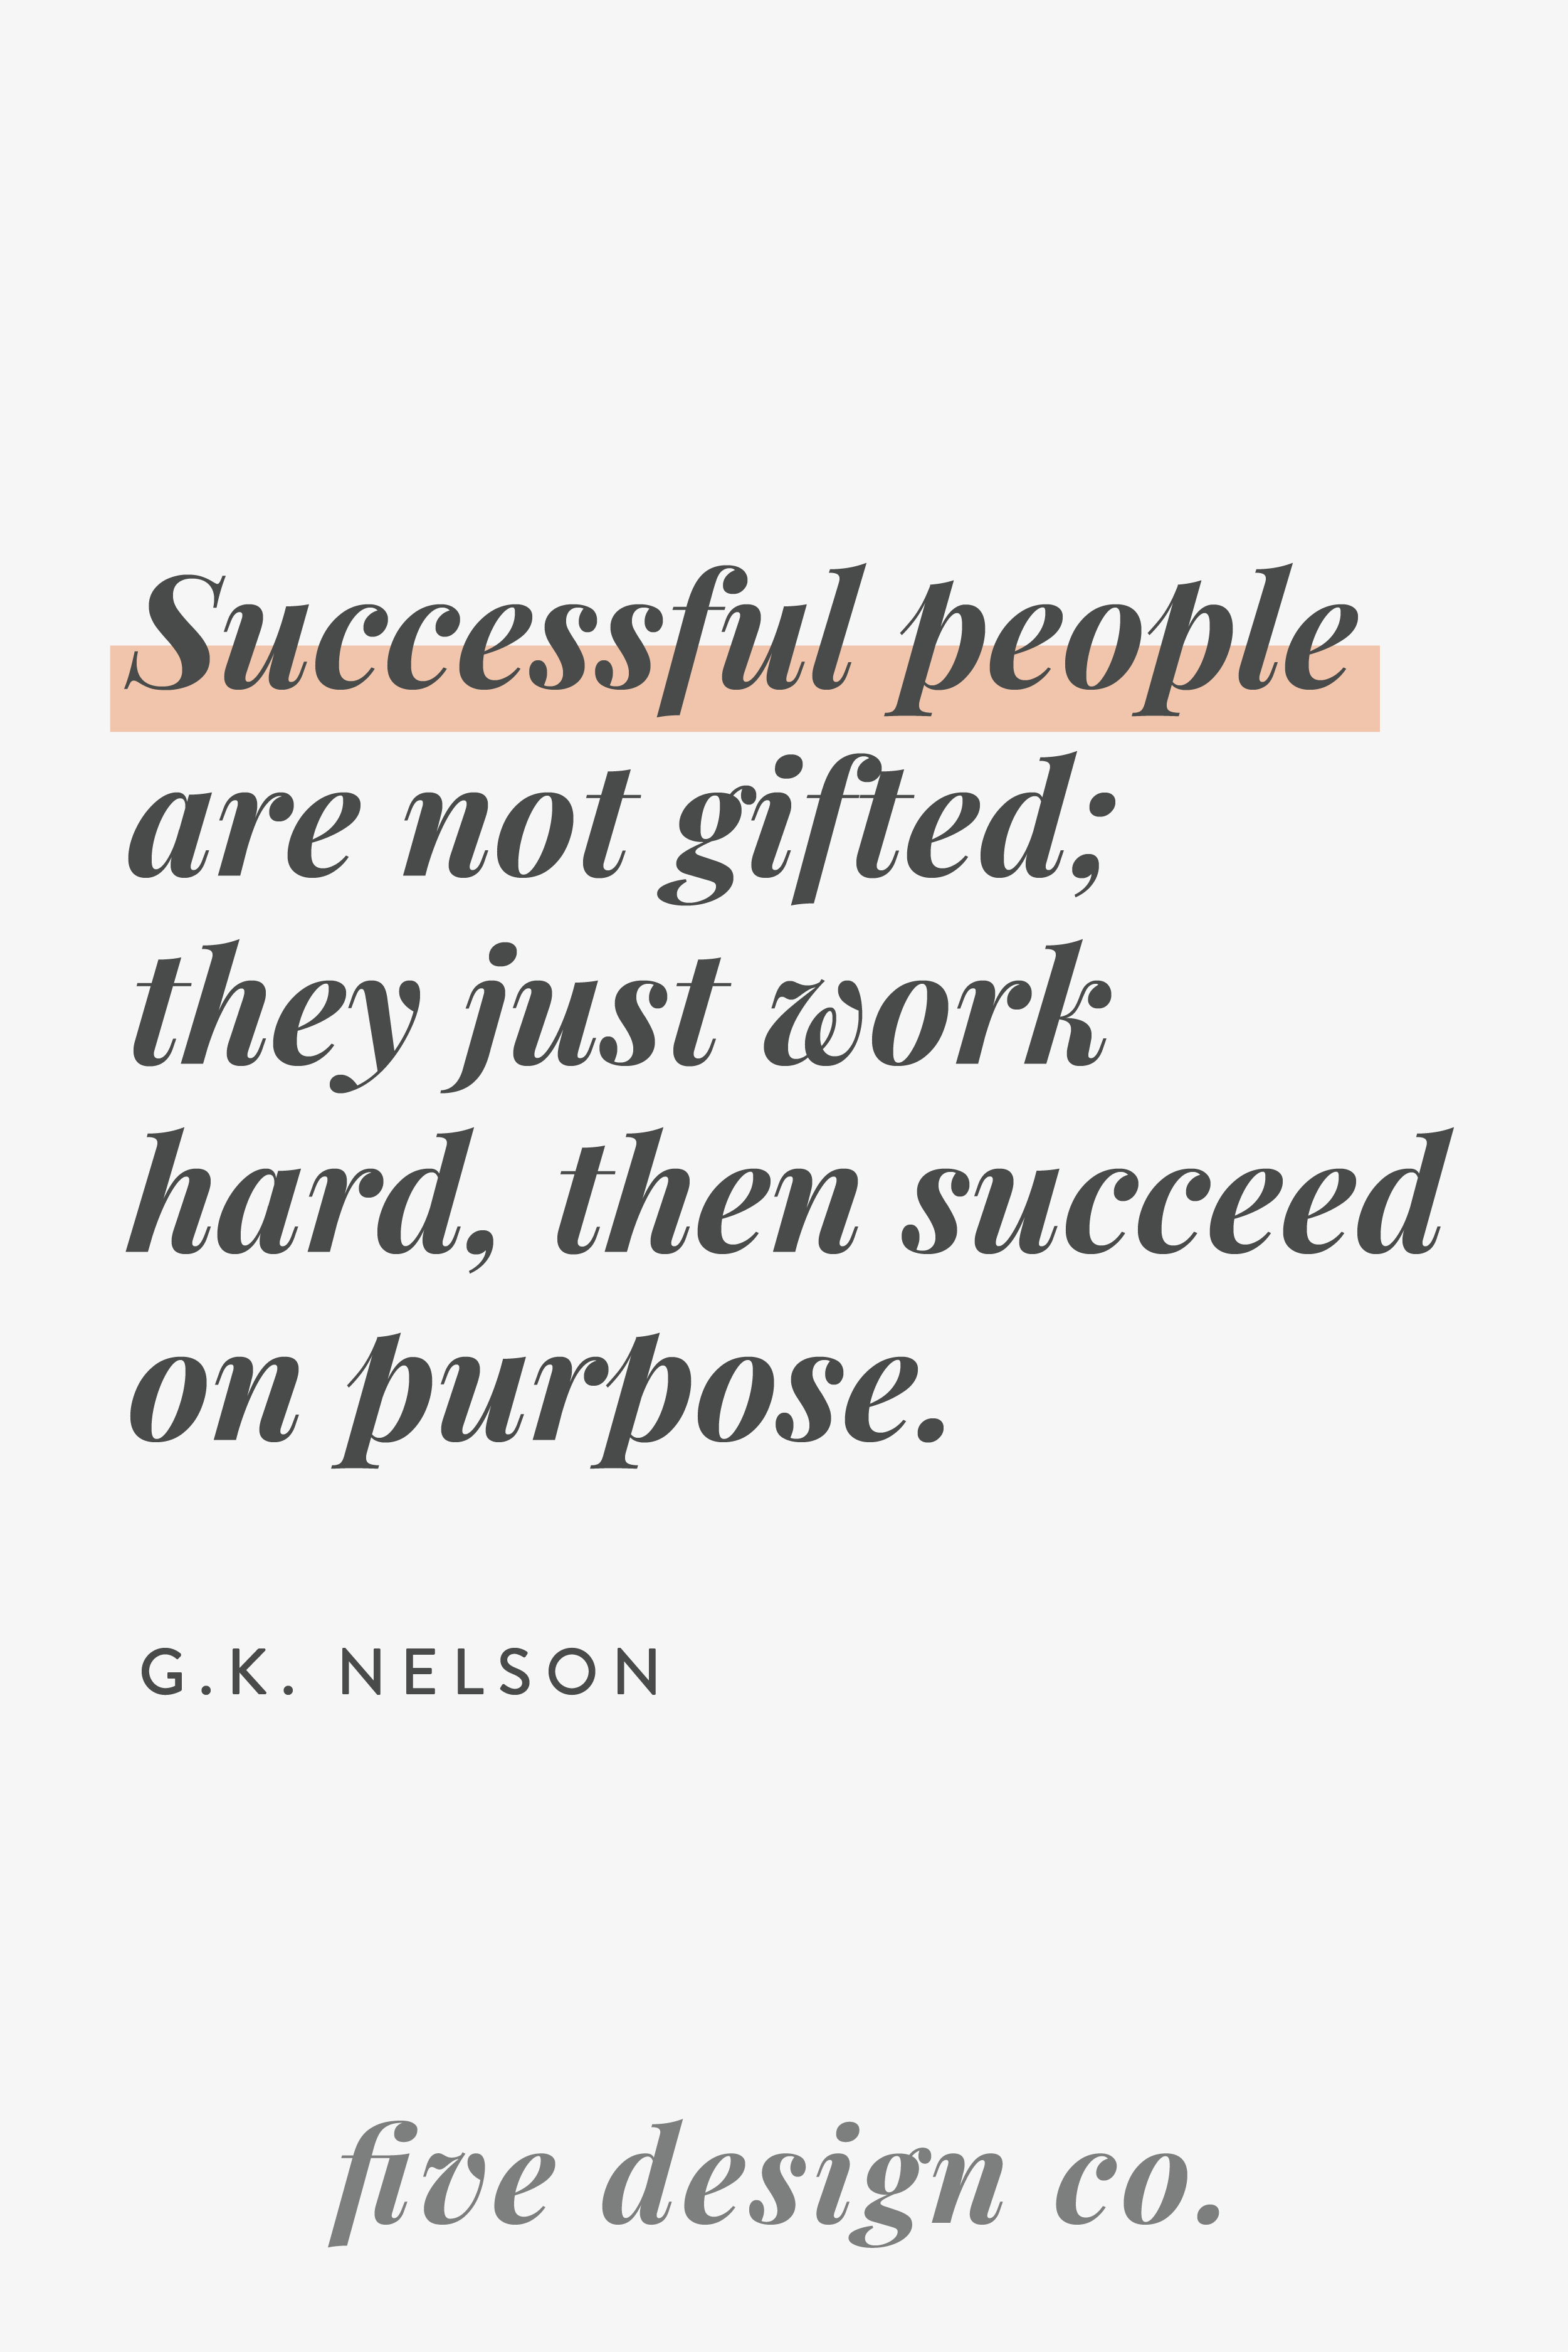 Successful people are not gifted; they just work hard, then succeed on purpose. -- G.K. Nelson